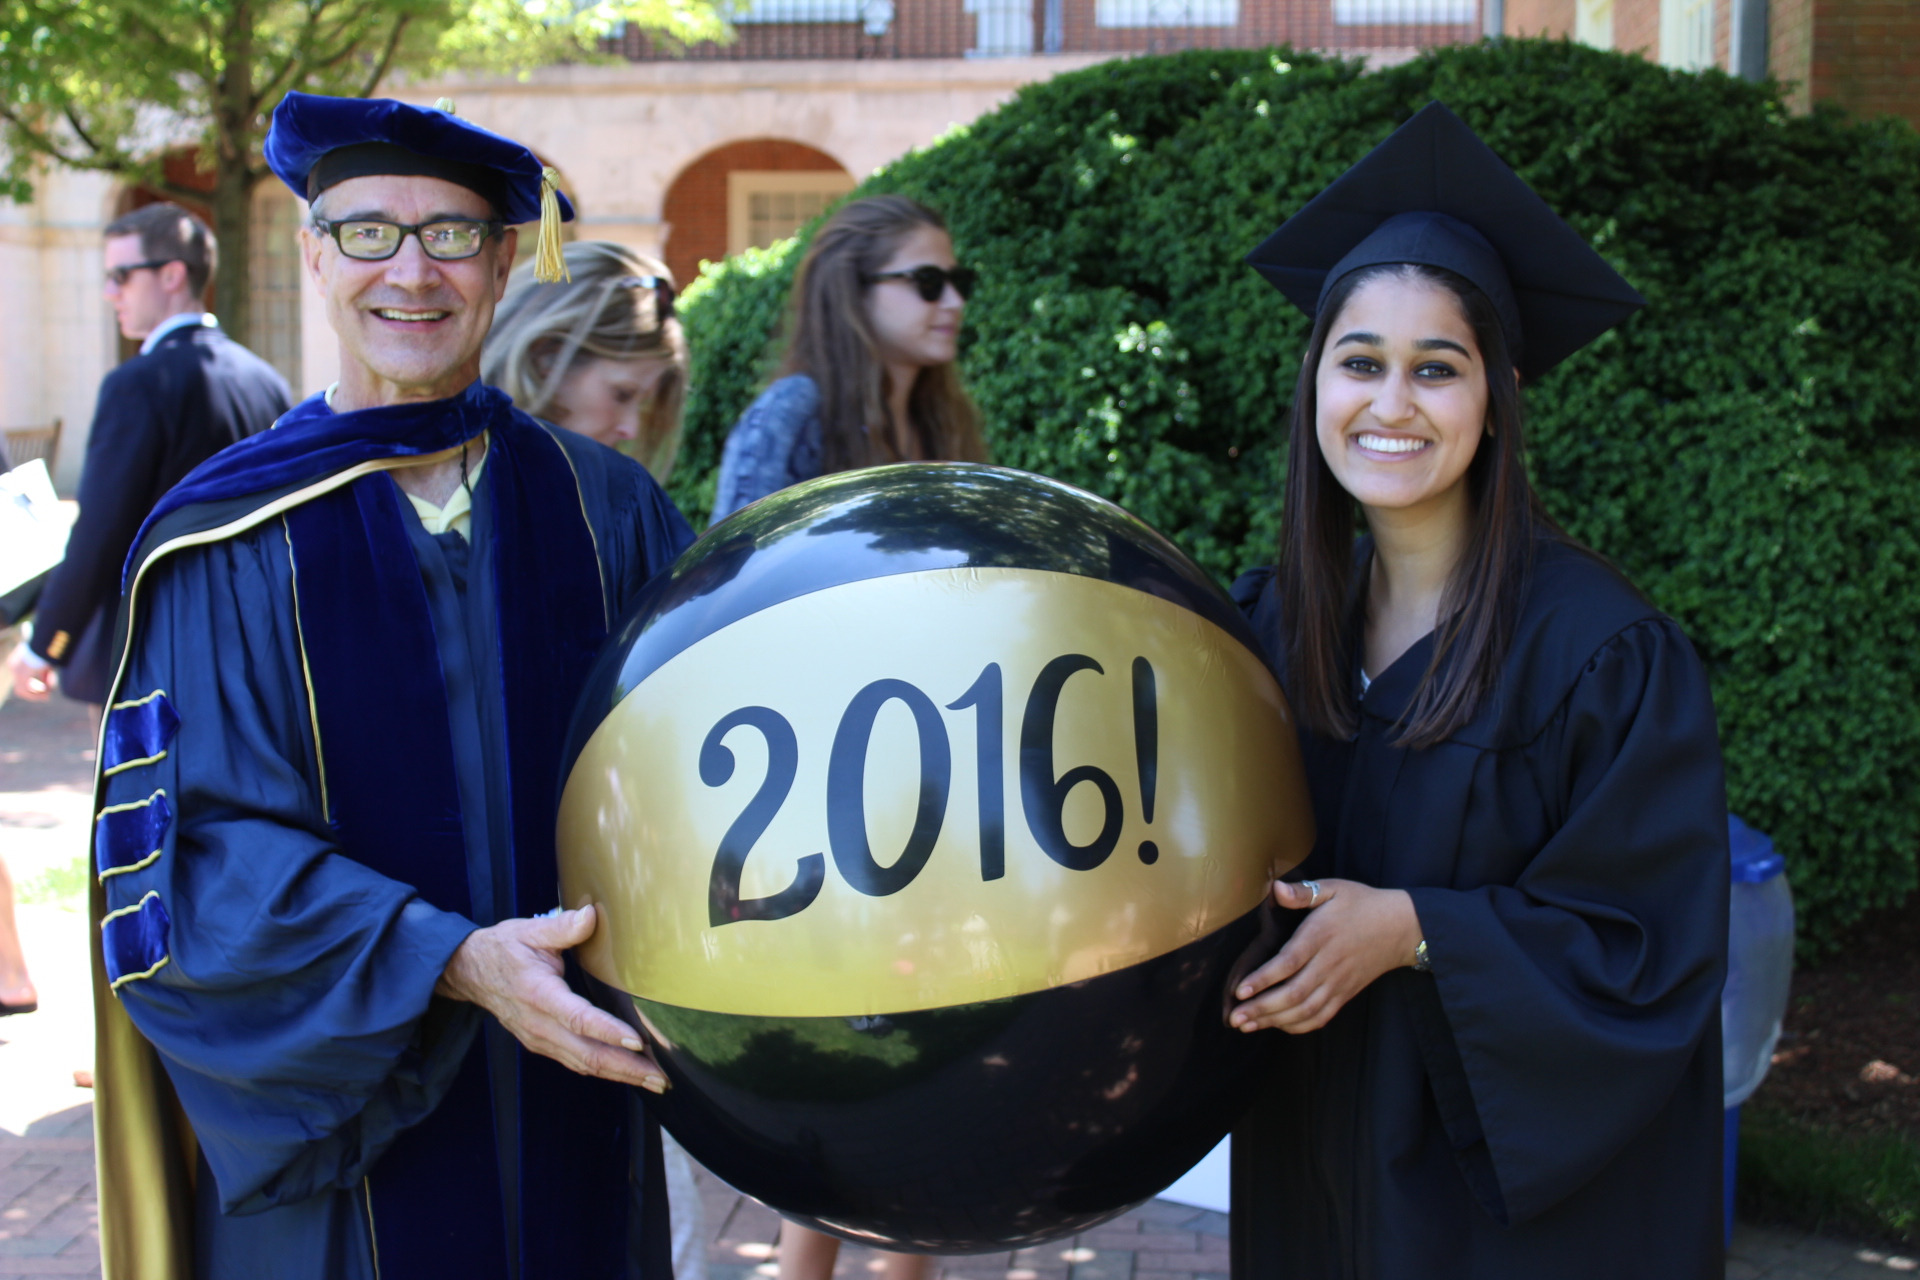 """Professor Luis González and students celebrating graduation, holding a large """"2016!"""" black and gold beach ball"""